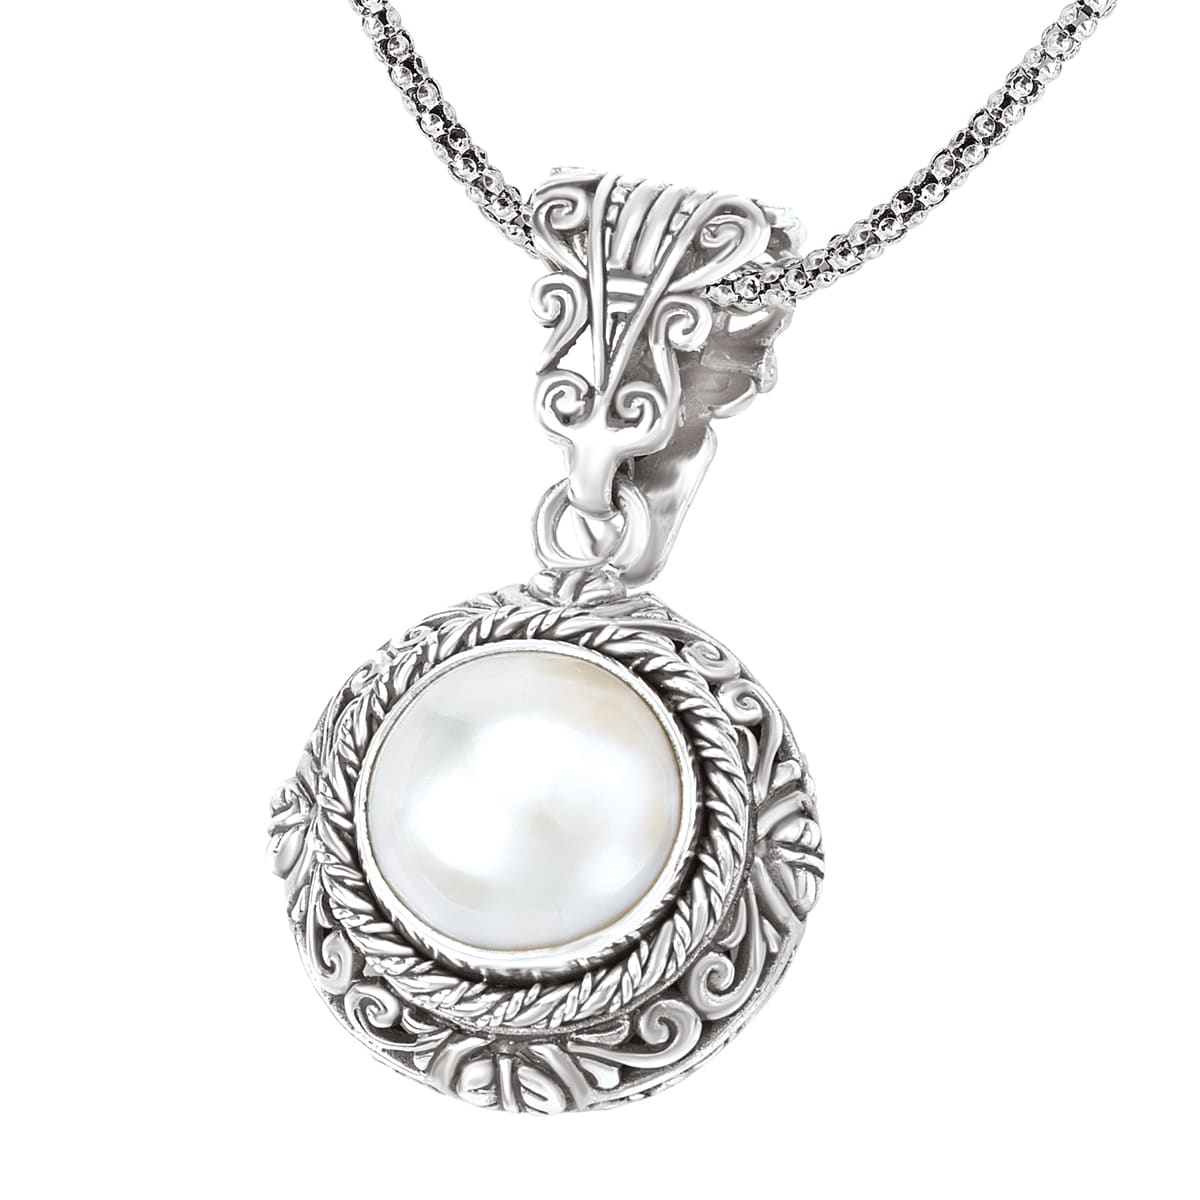 Mabe Pearl Necklace: Avanti Sterling Silver Mabe Cultured Pearl Necklace